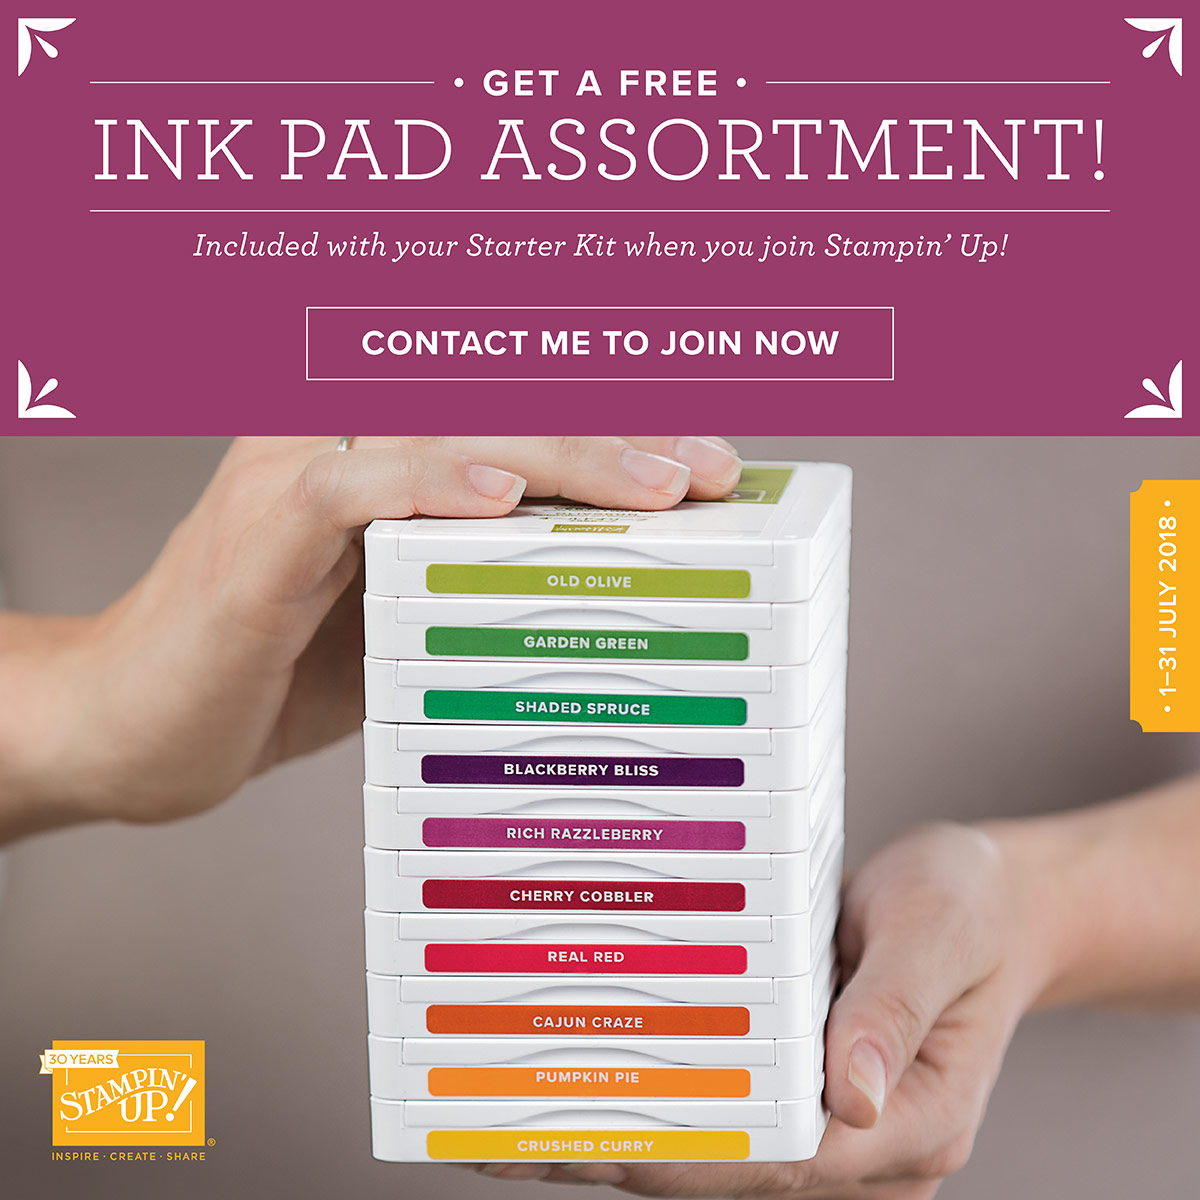 Join Stampin Up with free ink pads